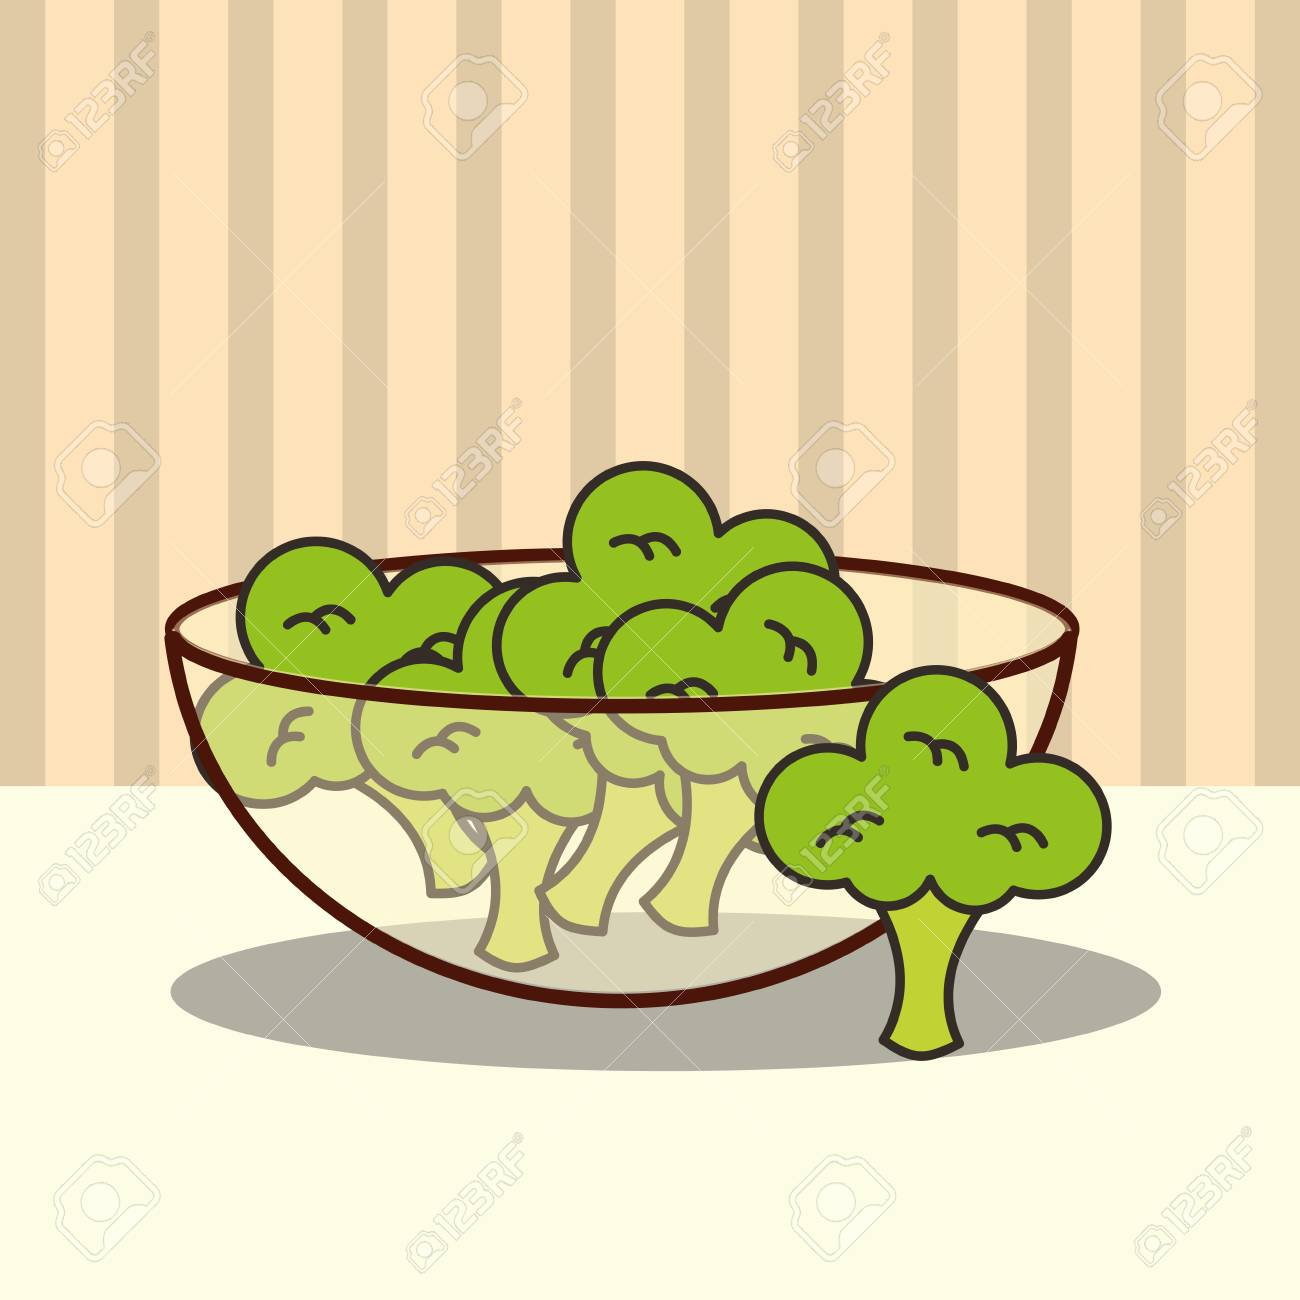 glass bowl with fresh broccoli vector illustration royalty free cliparts vectors and stock illustration image 101681210 123rf com